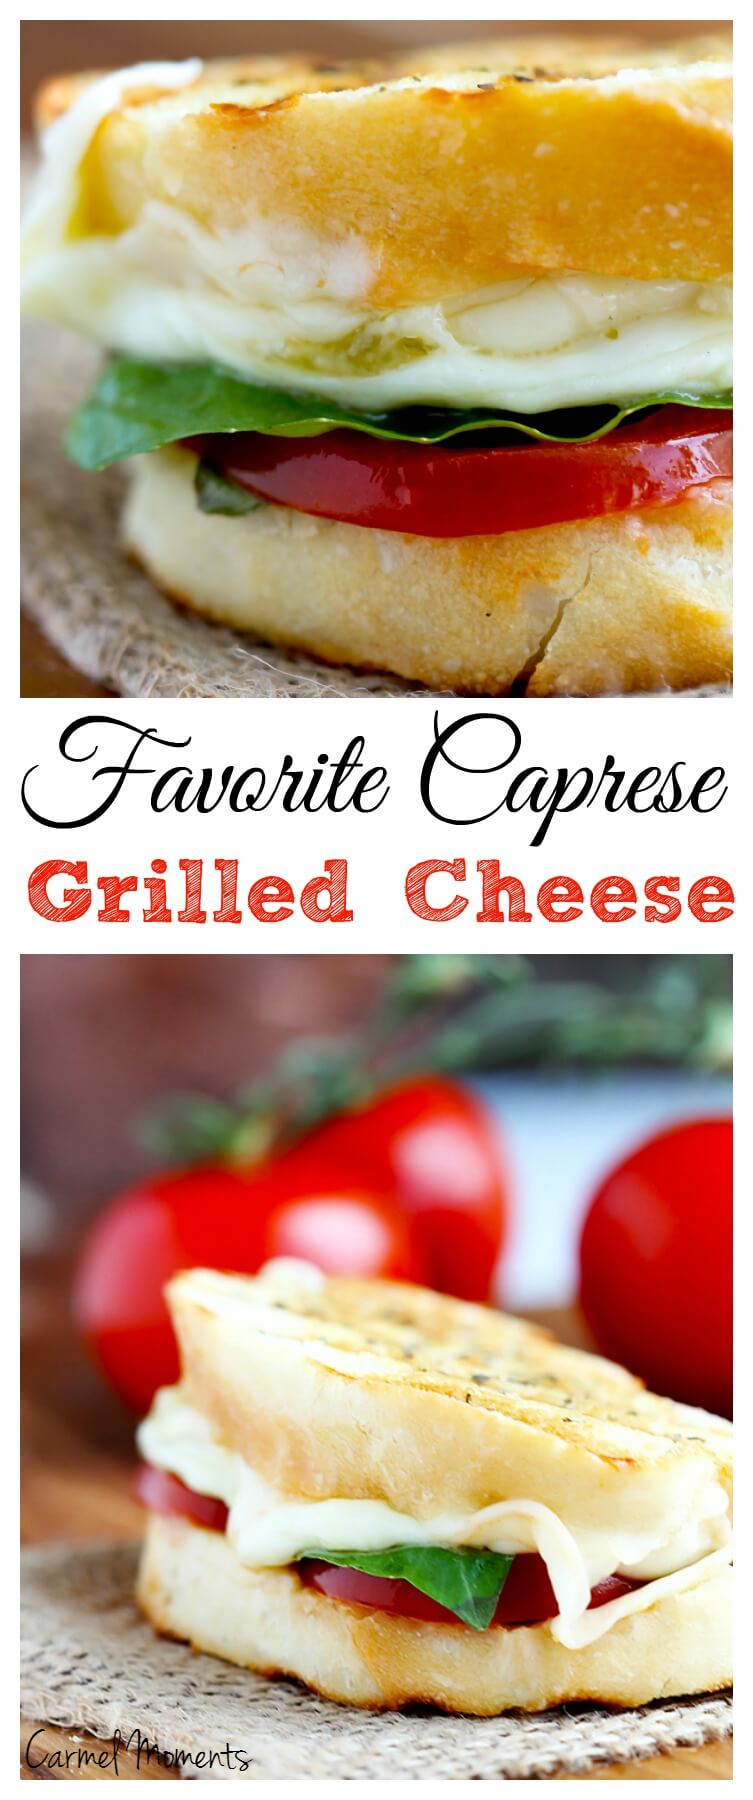 Favorite Caprese Grilled Cheese Sandwich - This rockin' combo of ...